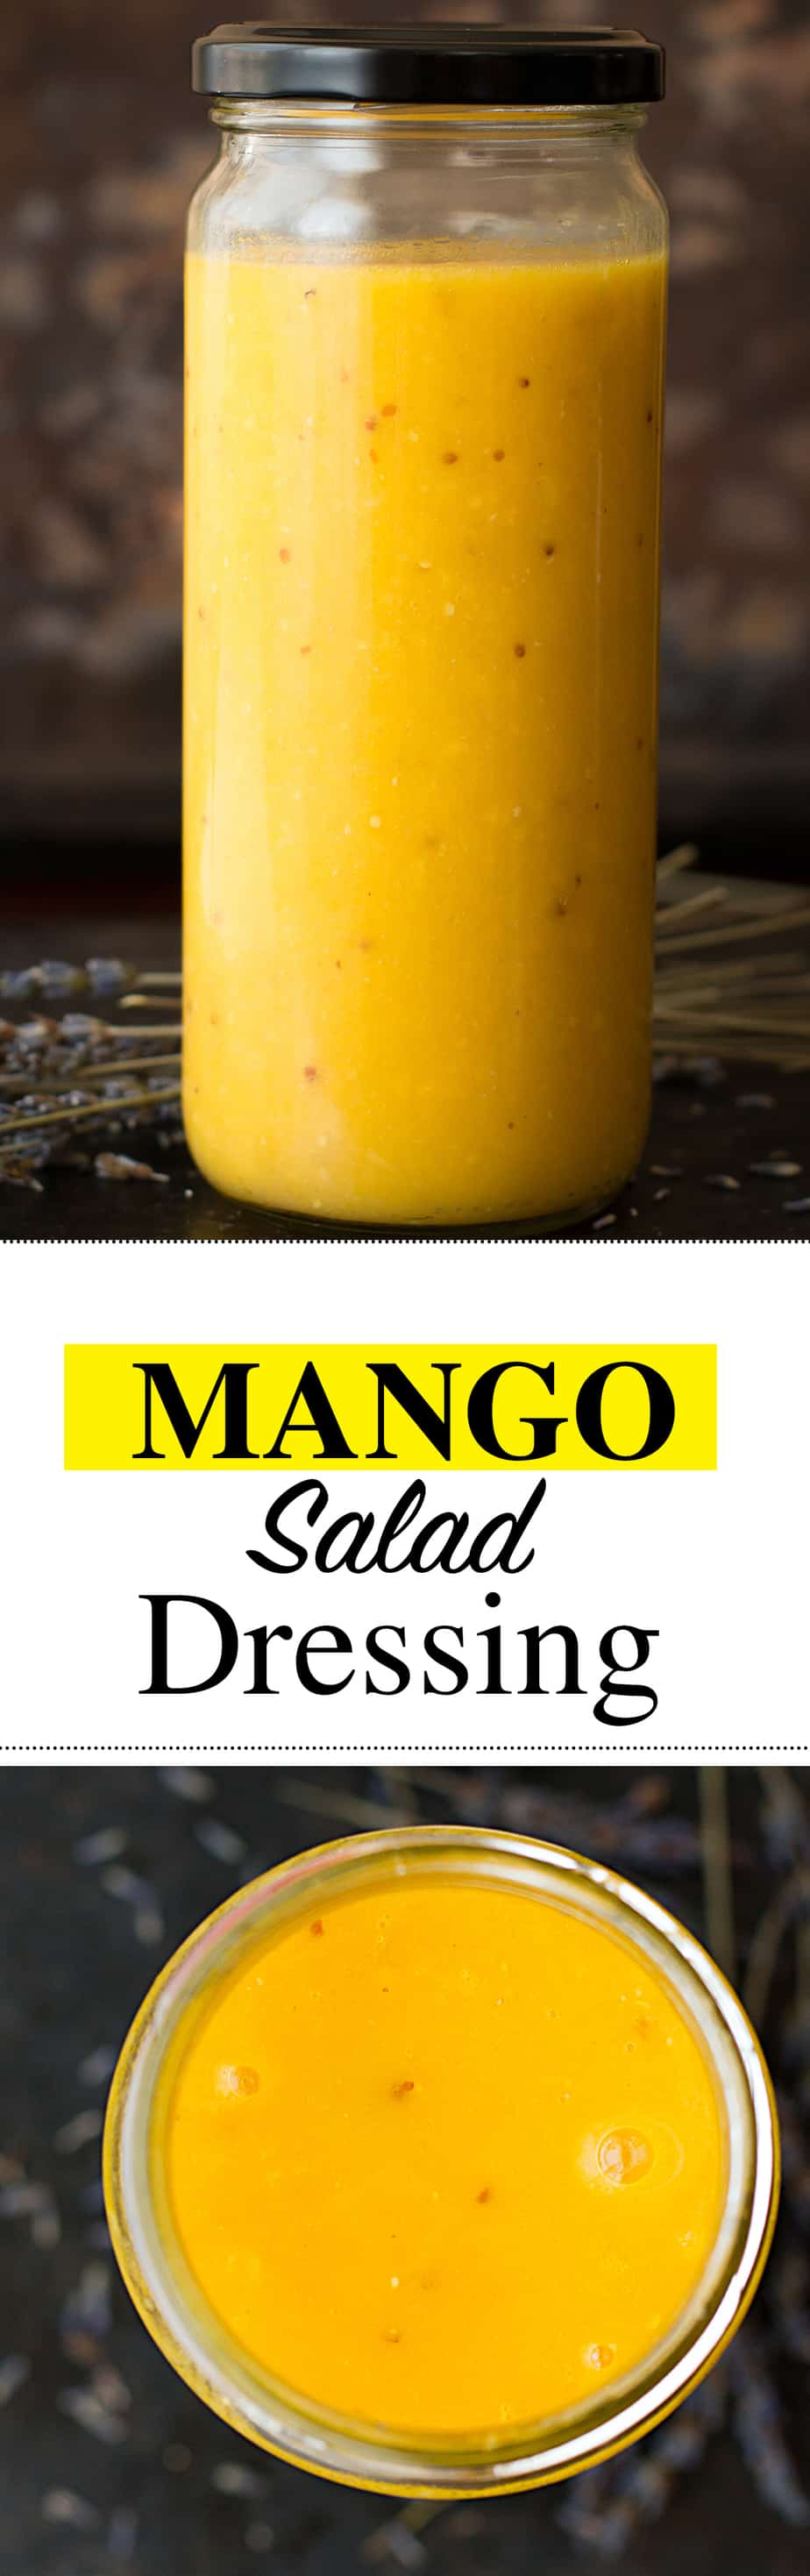 Mango Salad Dressing - Posh Journal